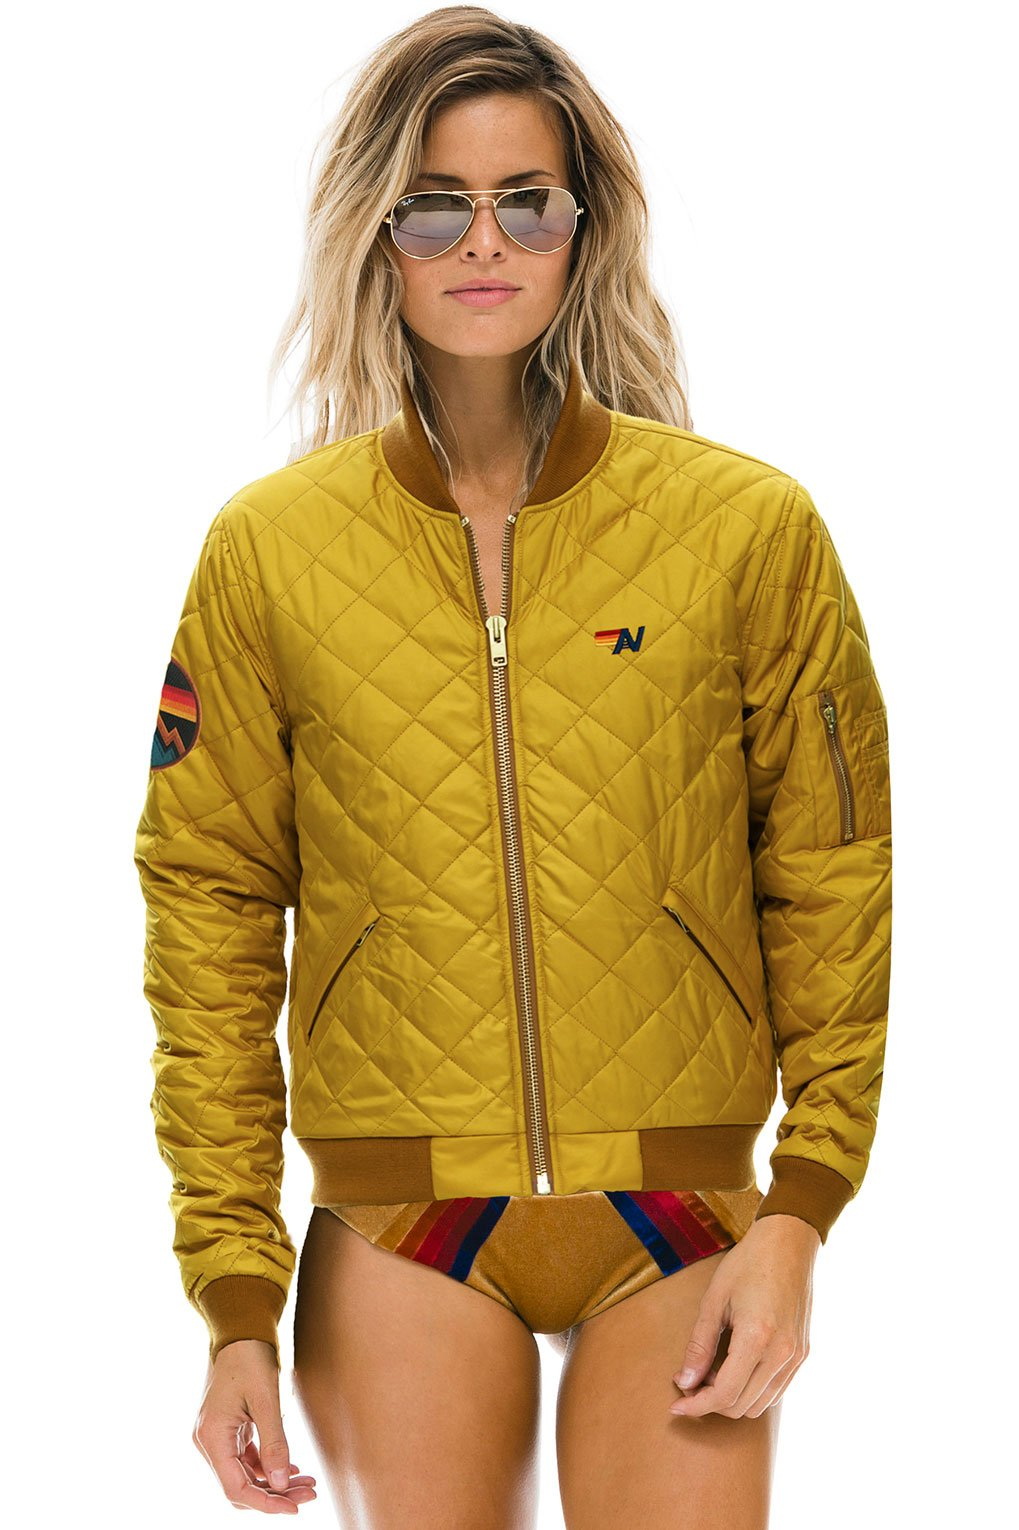 NEW! MACH 2 QUILTED BOMBER JACKET - VINTAGE GOLD - UNISEX